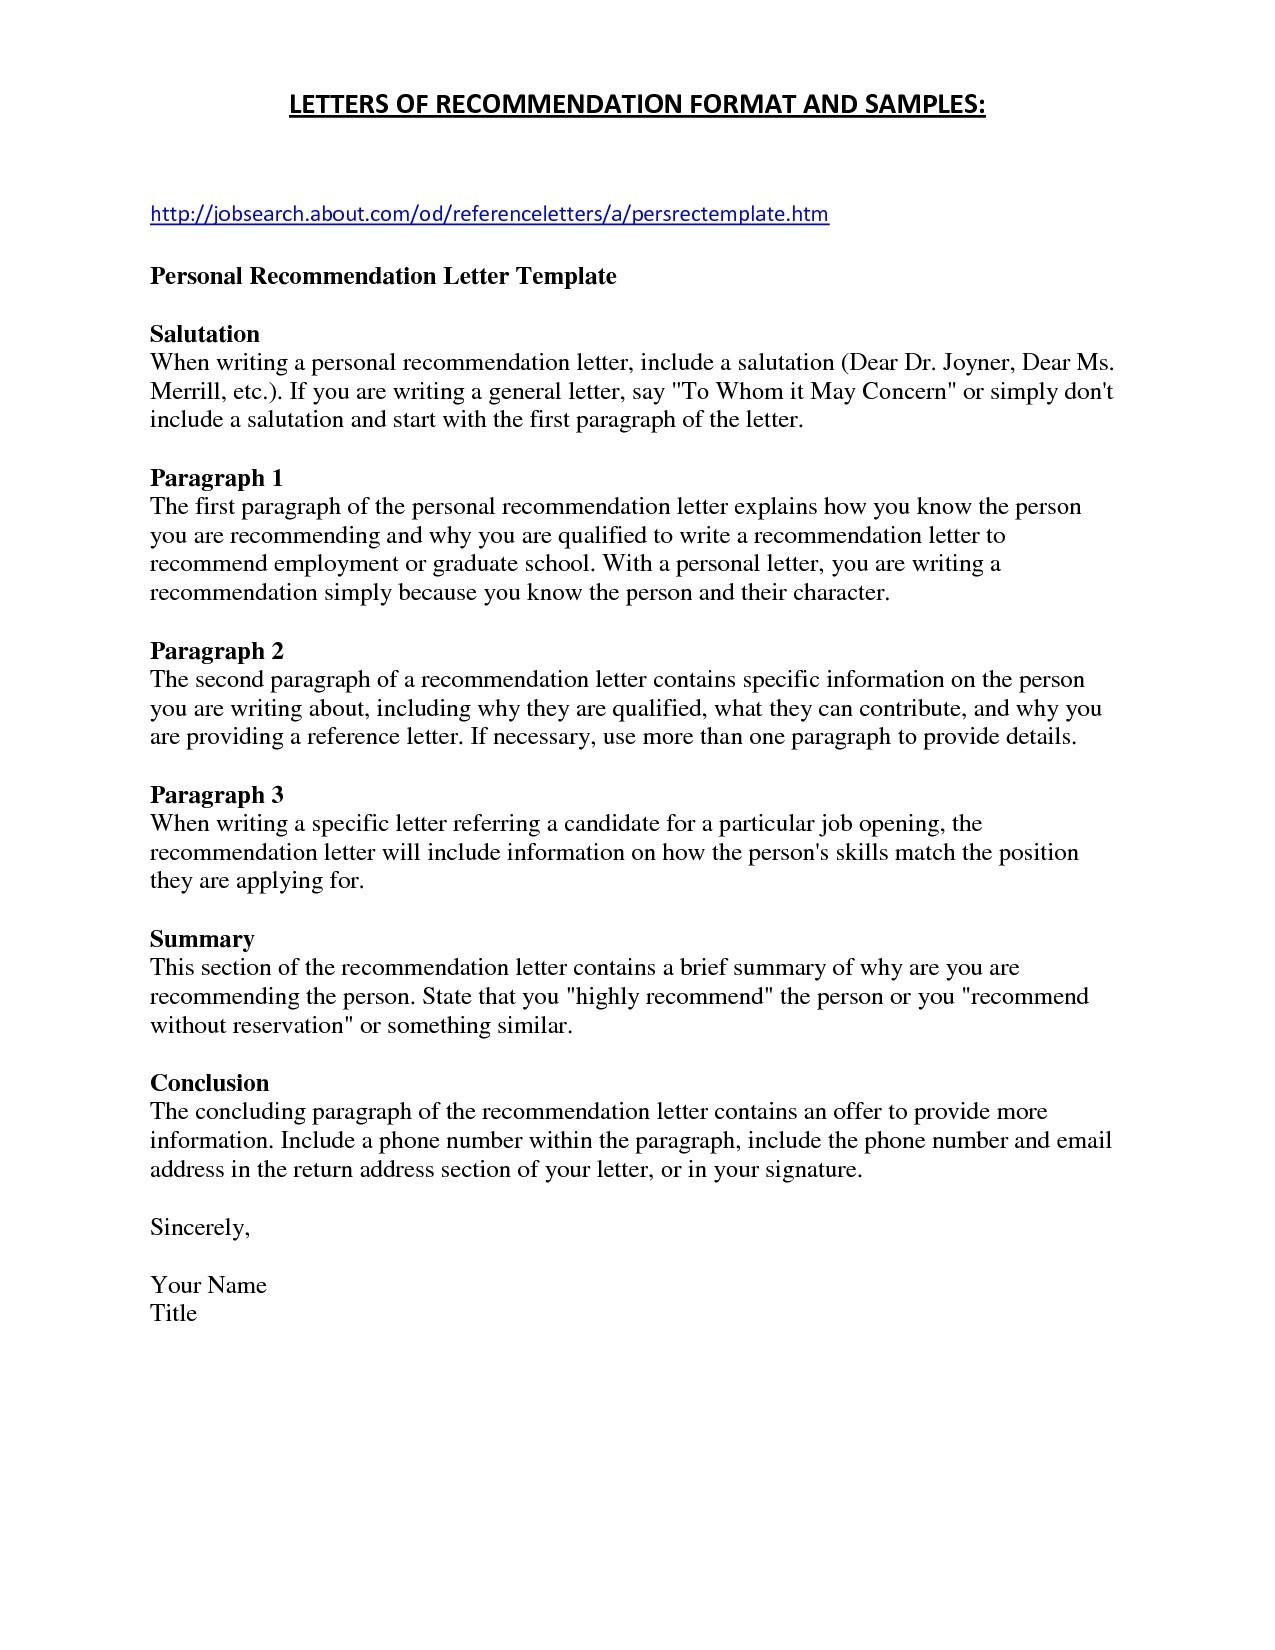 Nursing School Resume - Nursing School Resume